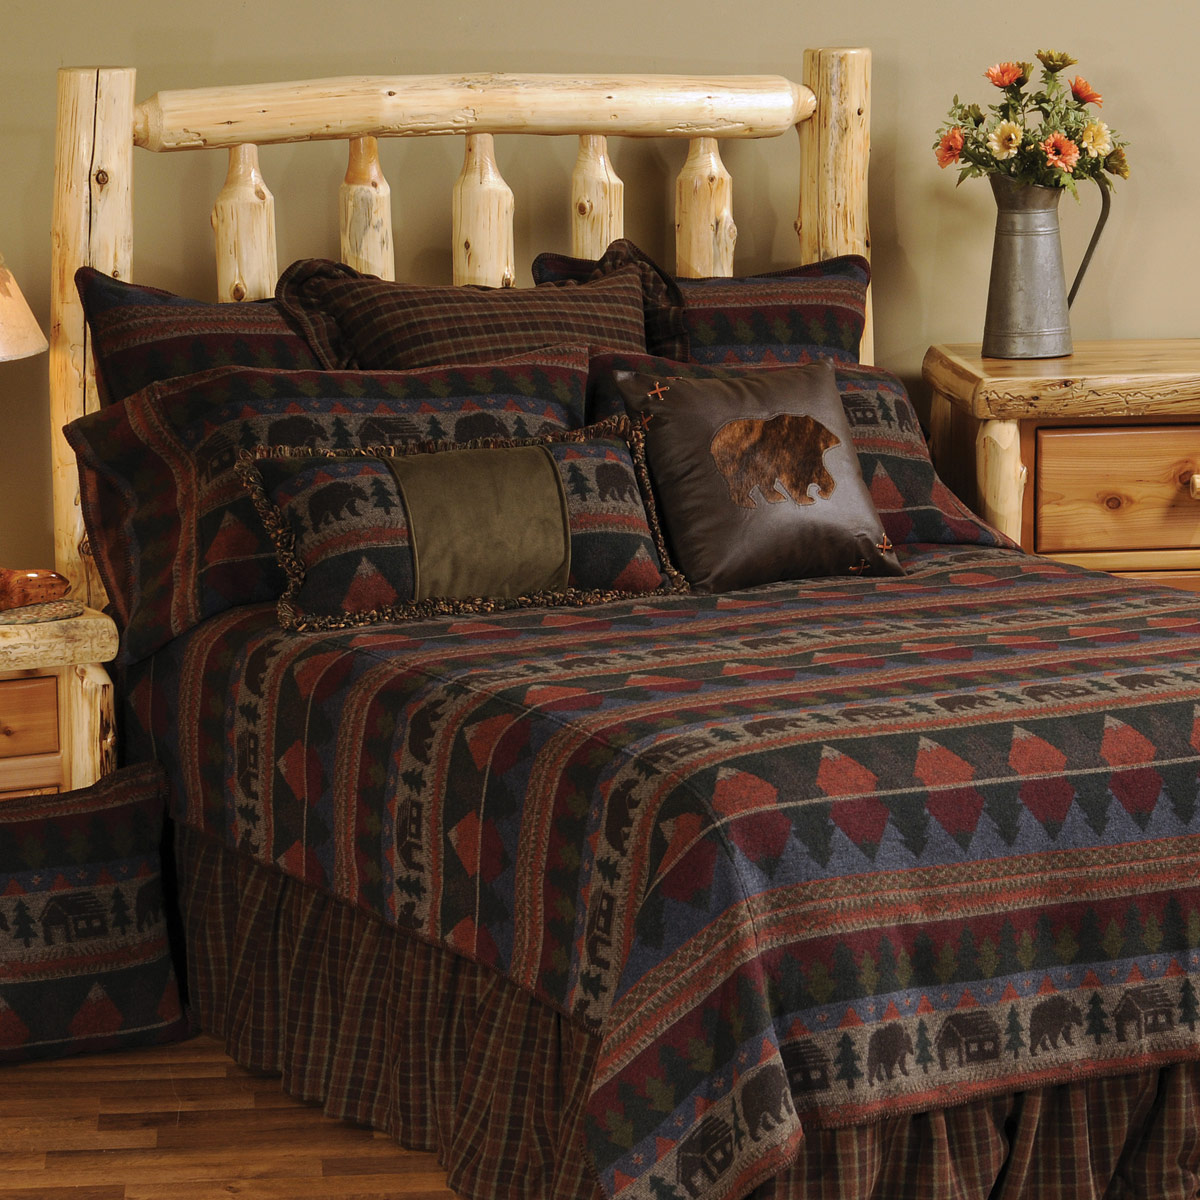 Black Forest Decor Cabin Bear Bedspread - Super Queen